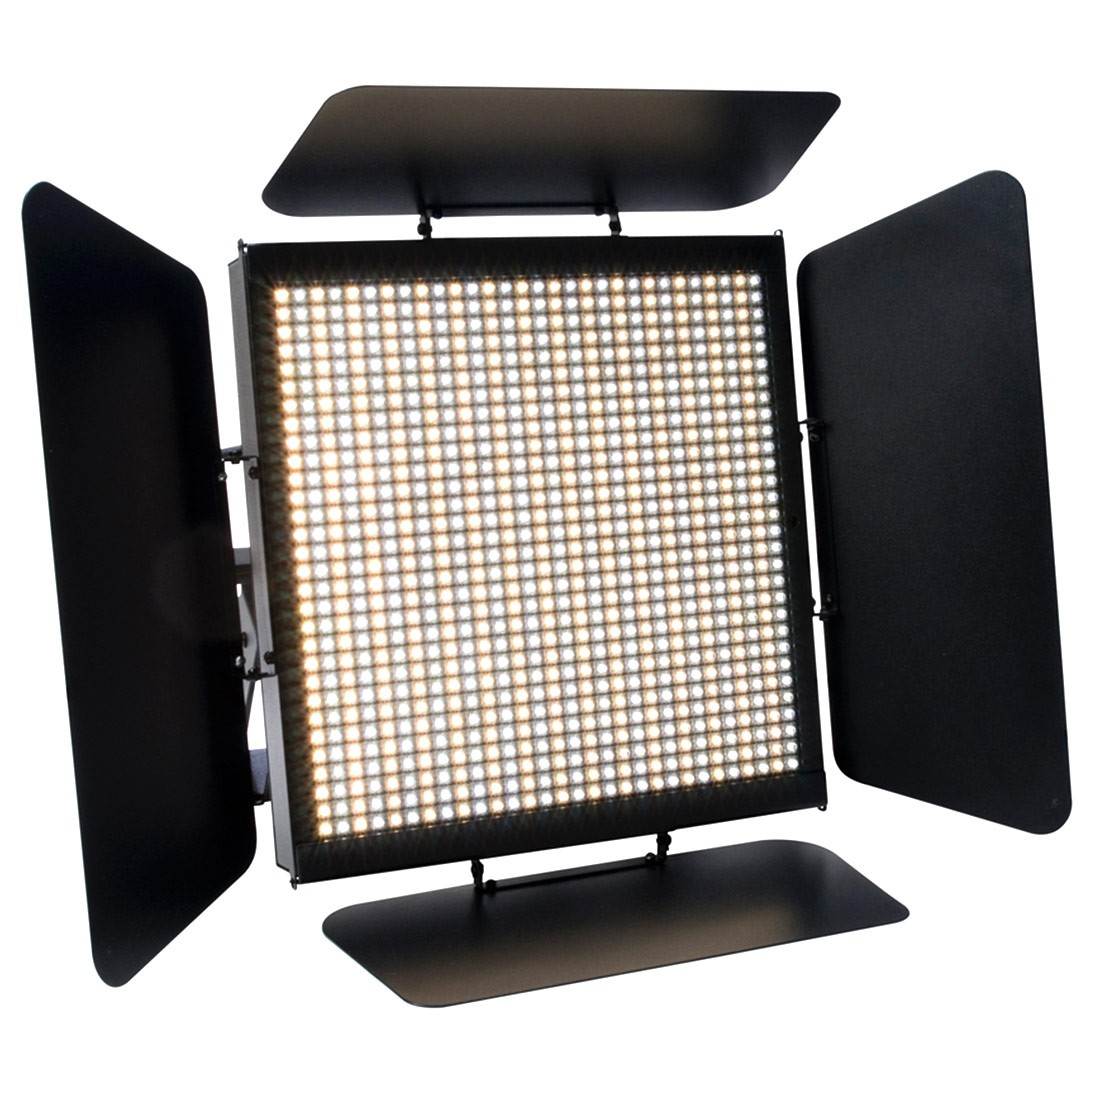 Elation TVL2000 II High 92Cri 90W Ultimate Broadcast LED TV Light Panel with 450 Warm & Cool White LEDs (TVL601)